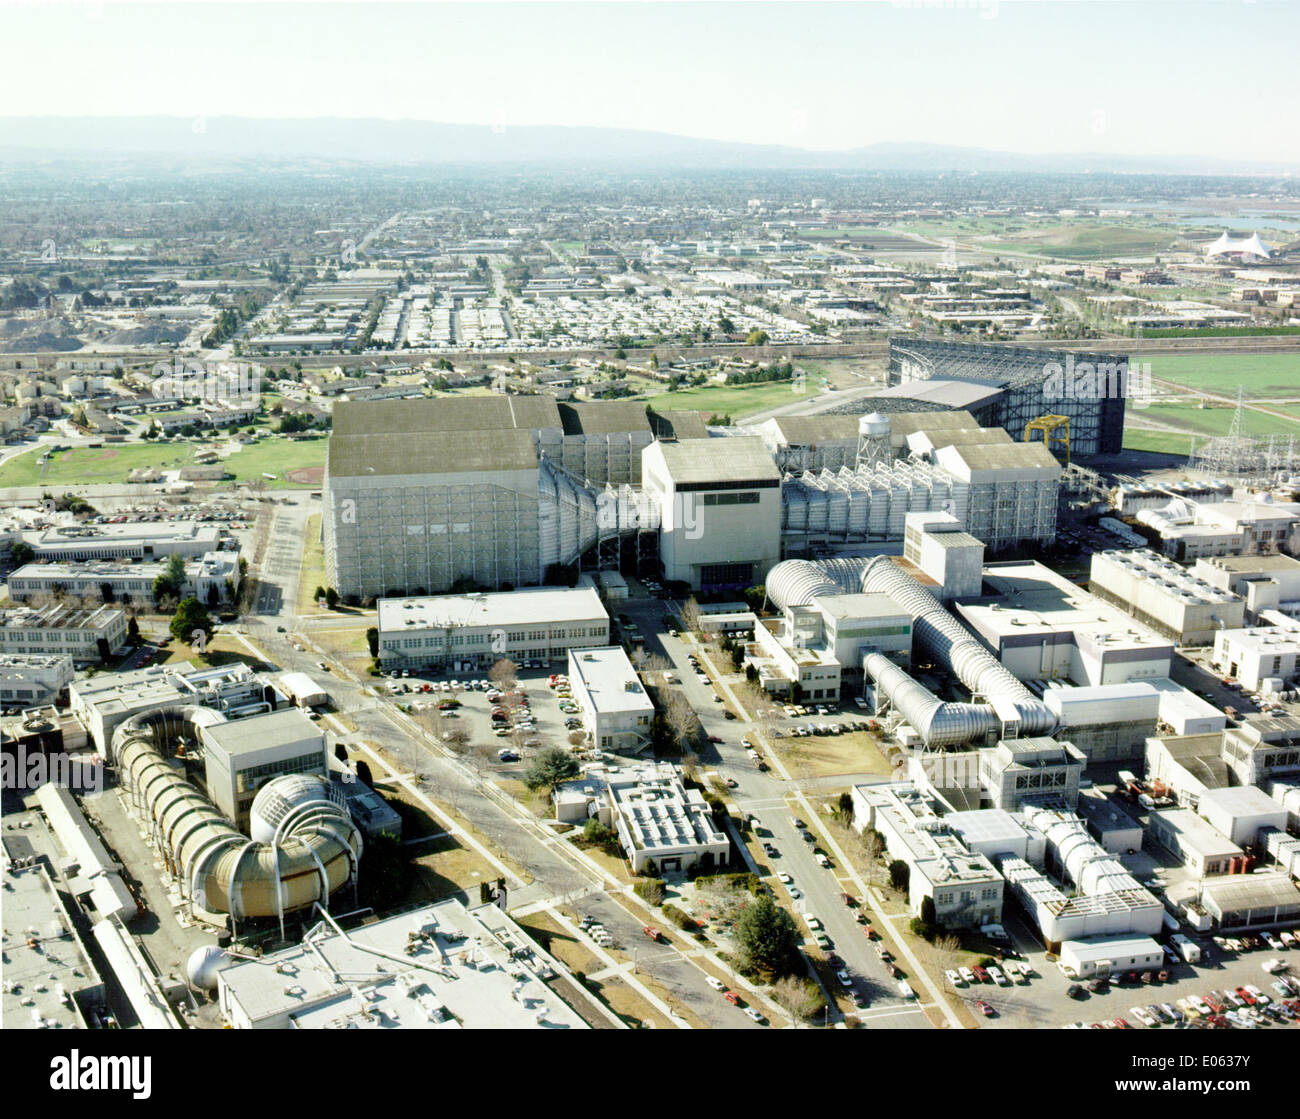 Aerial View Ames Research Center Wind Tunnels - Stock Image